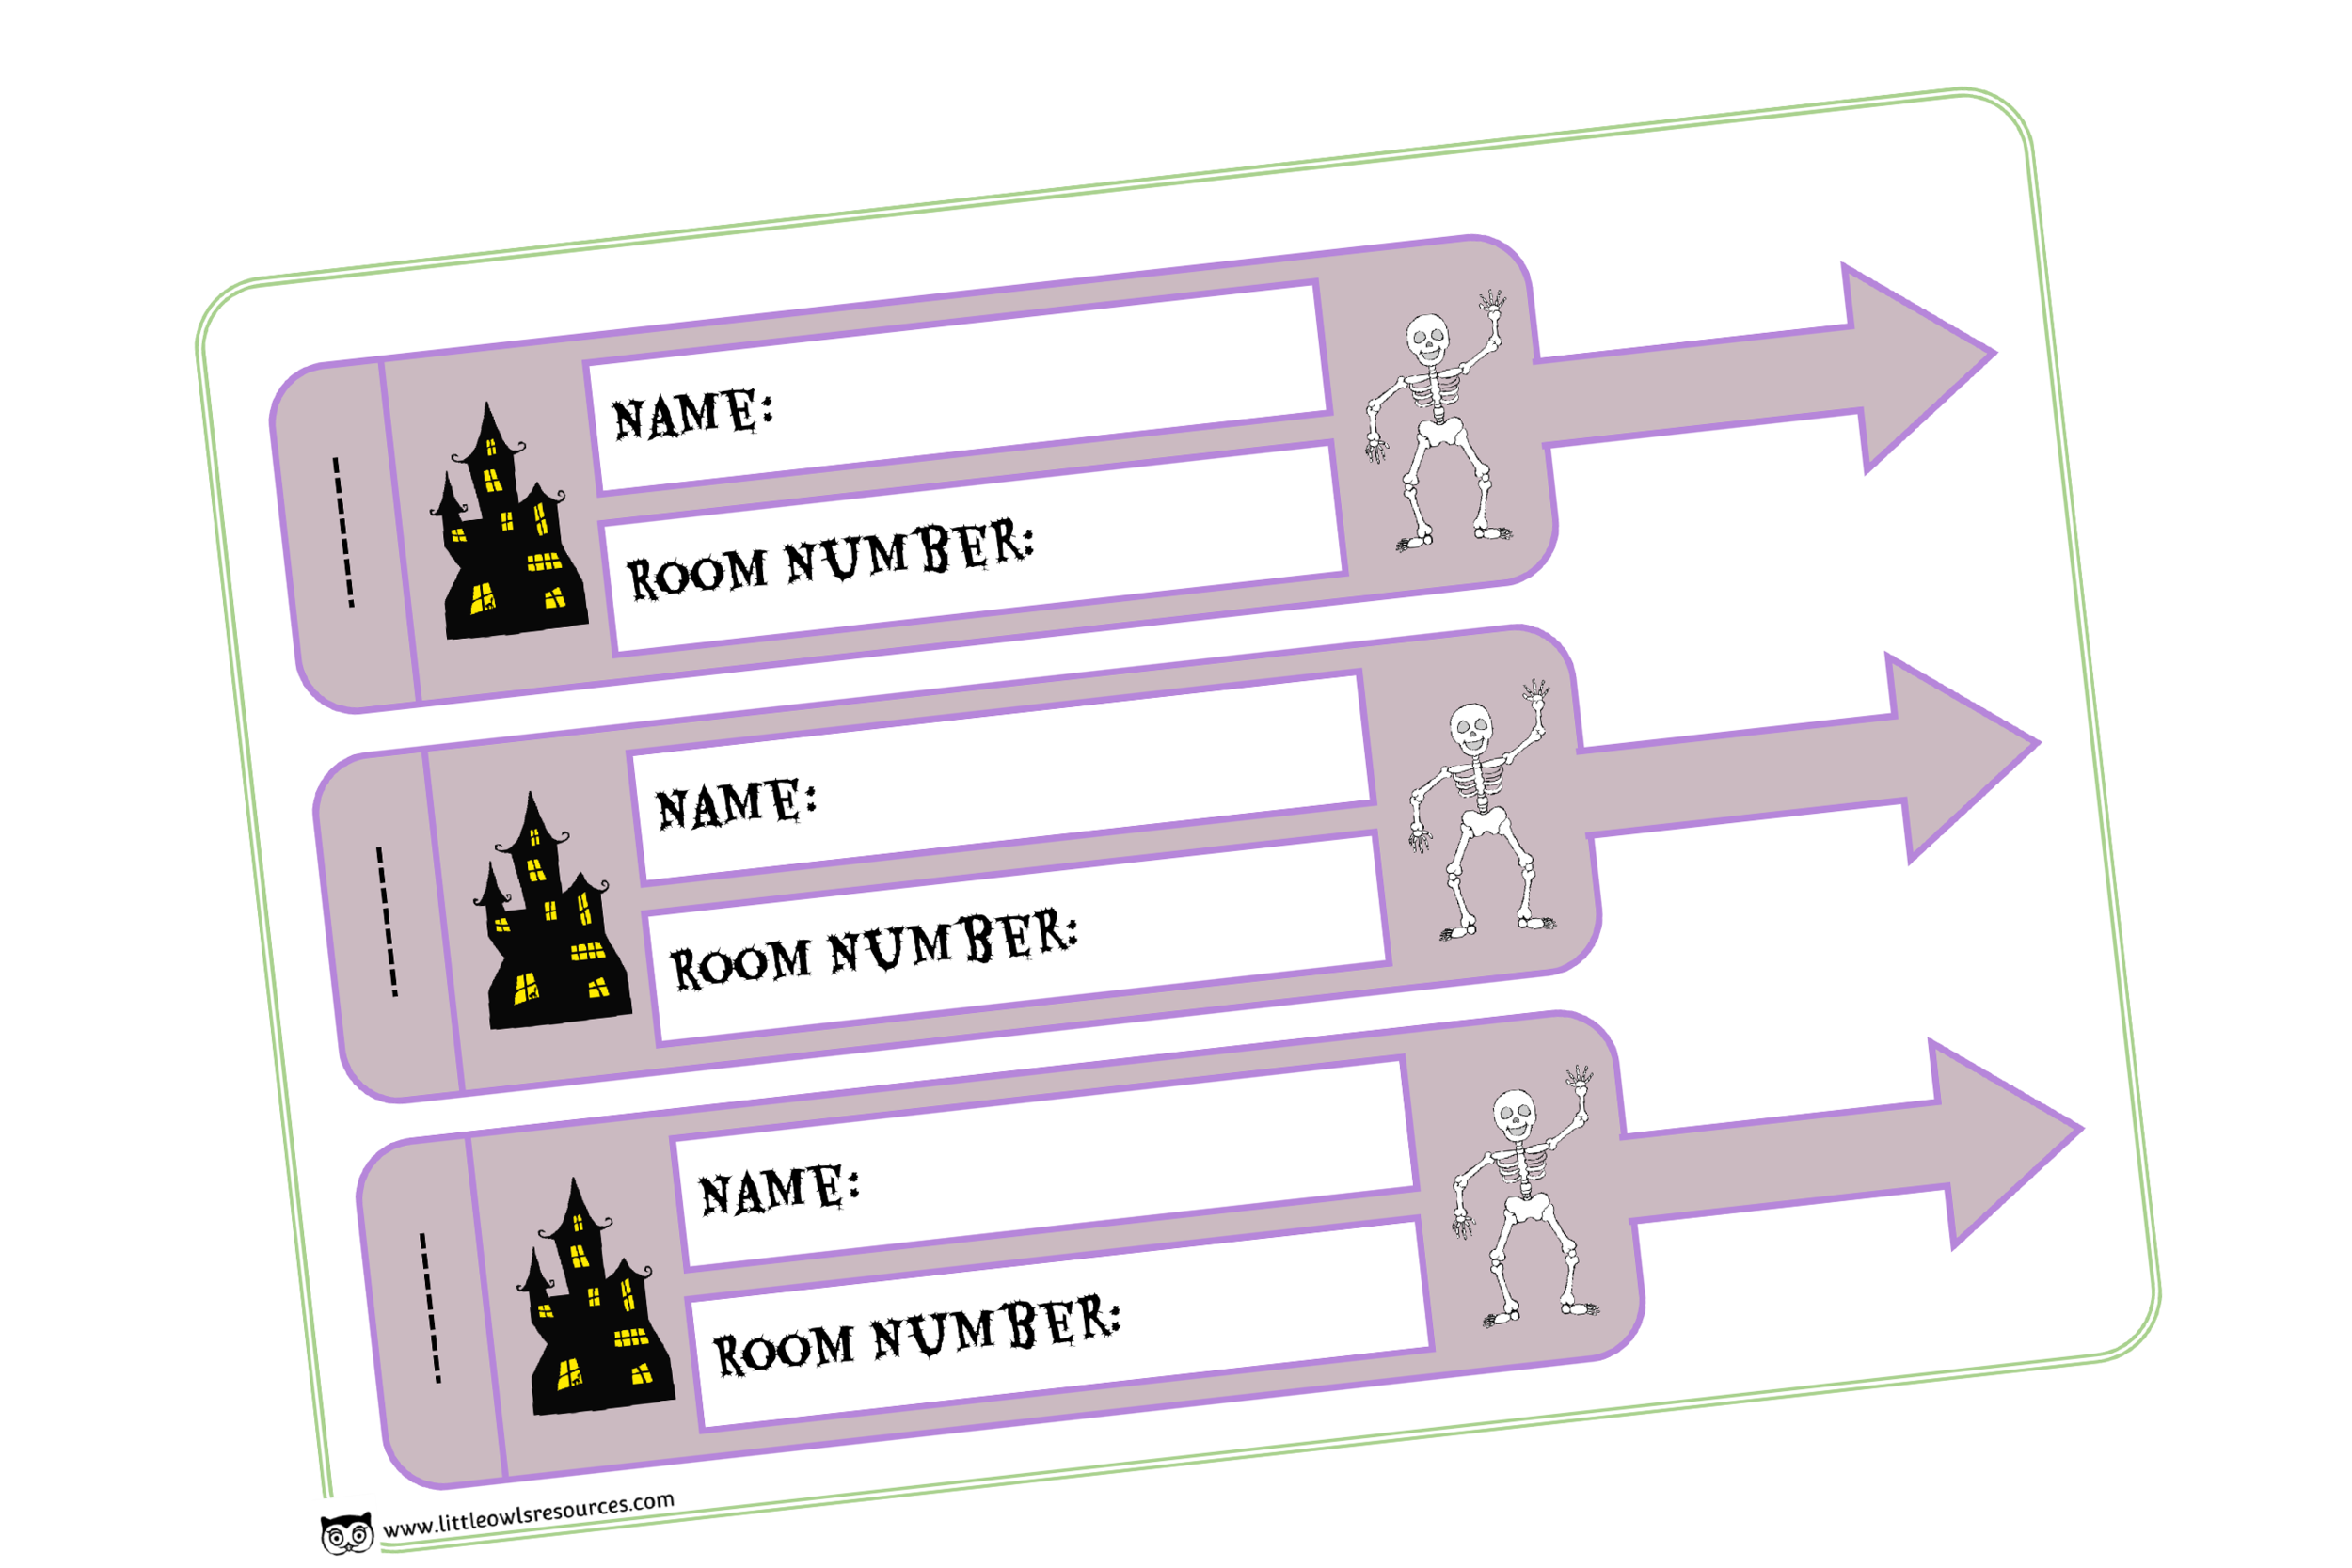 SPOOKY HALLOWEEN HOTEL LUGGAGE TAGS